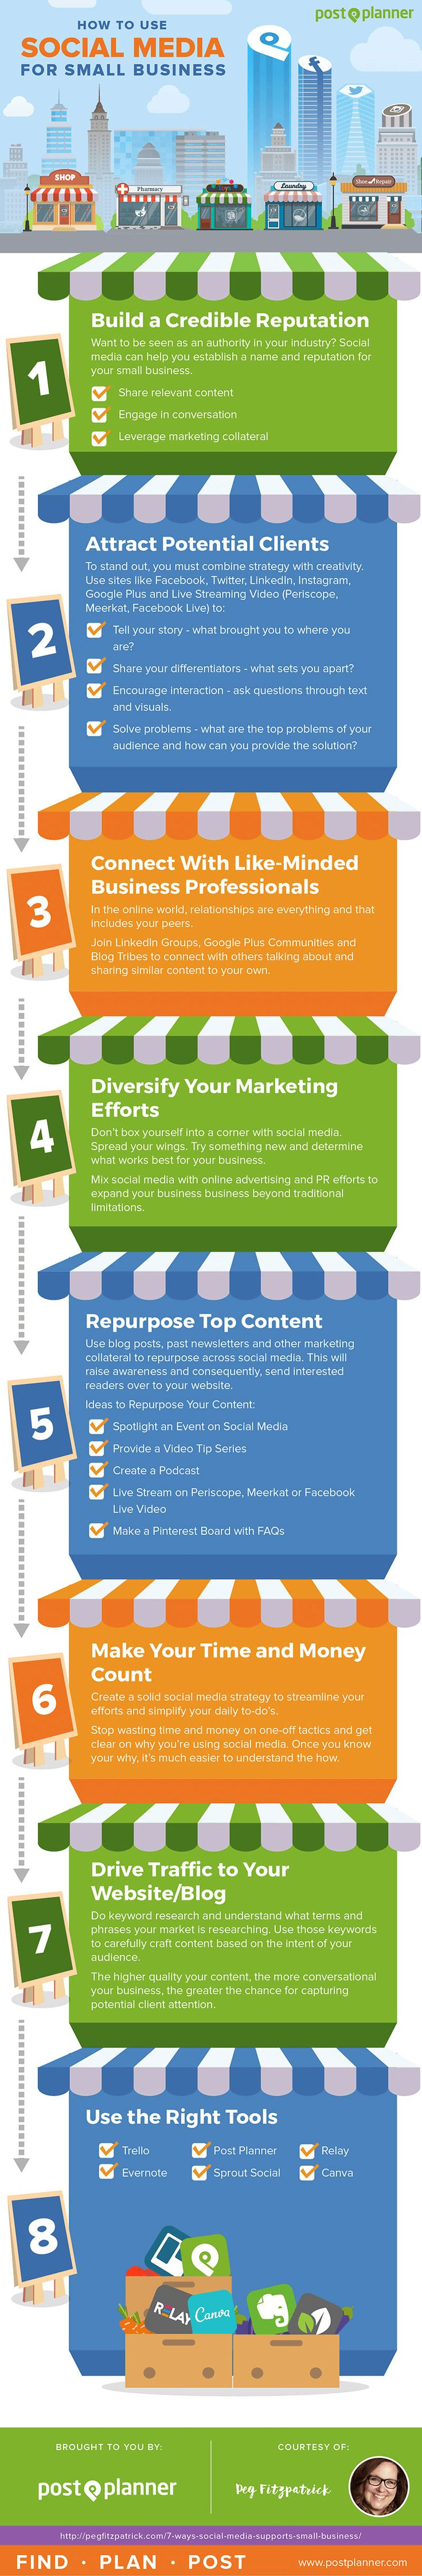 8 Awesome Social Media Marketing Tips You Can Use To Help Your Business Succeed - infographic